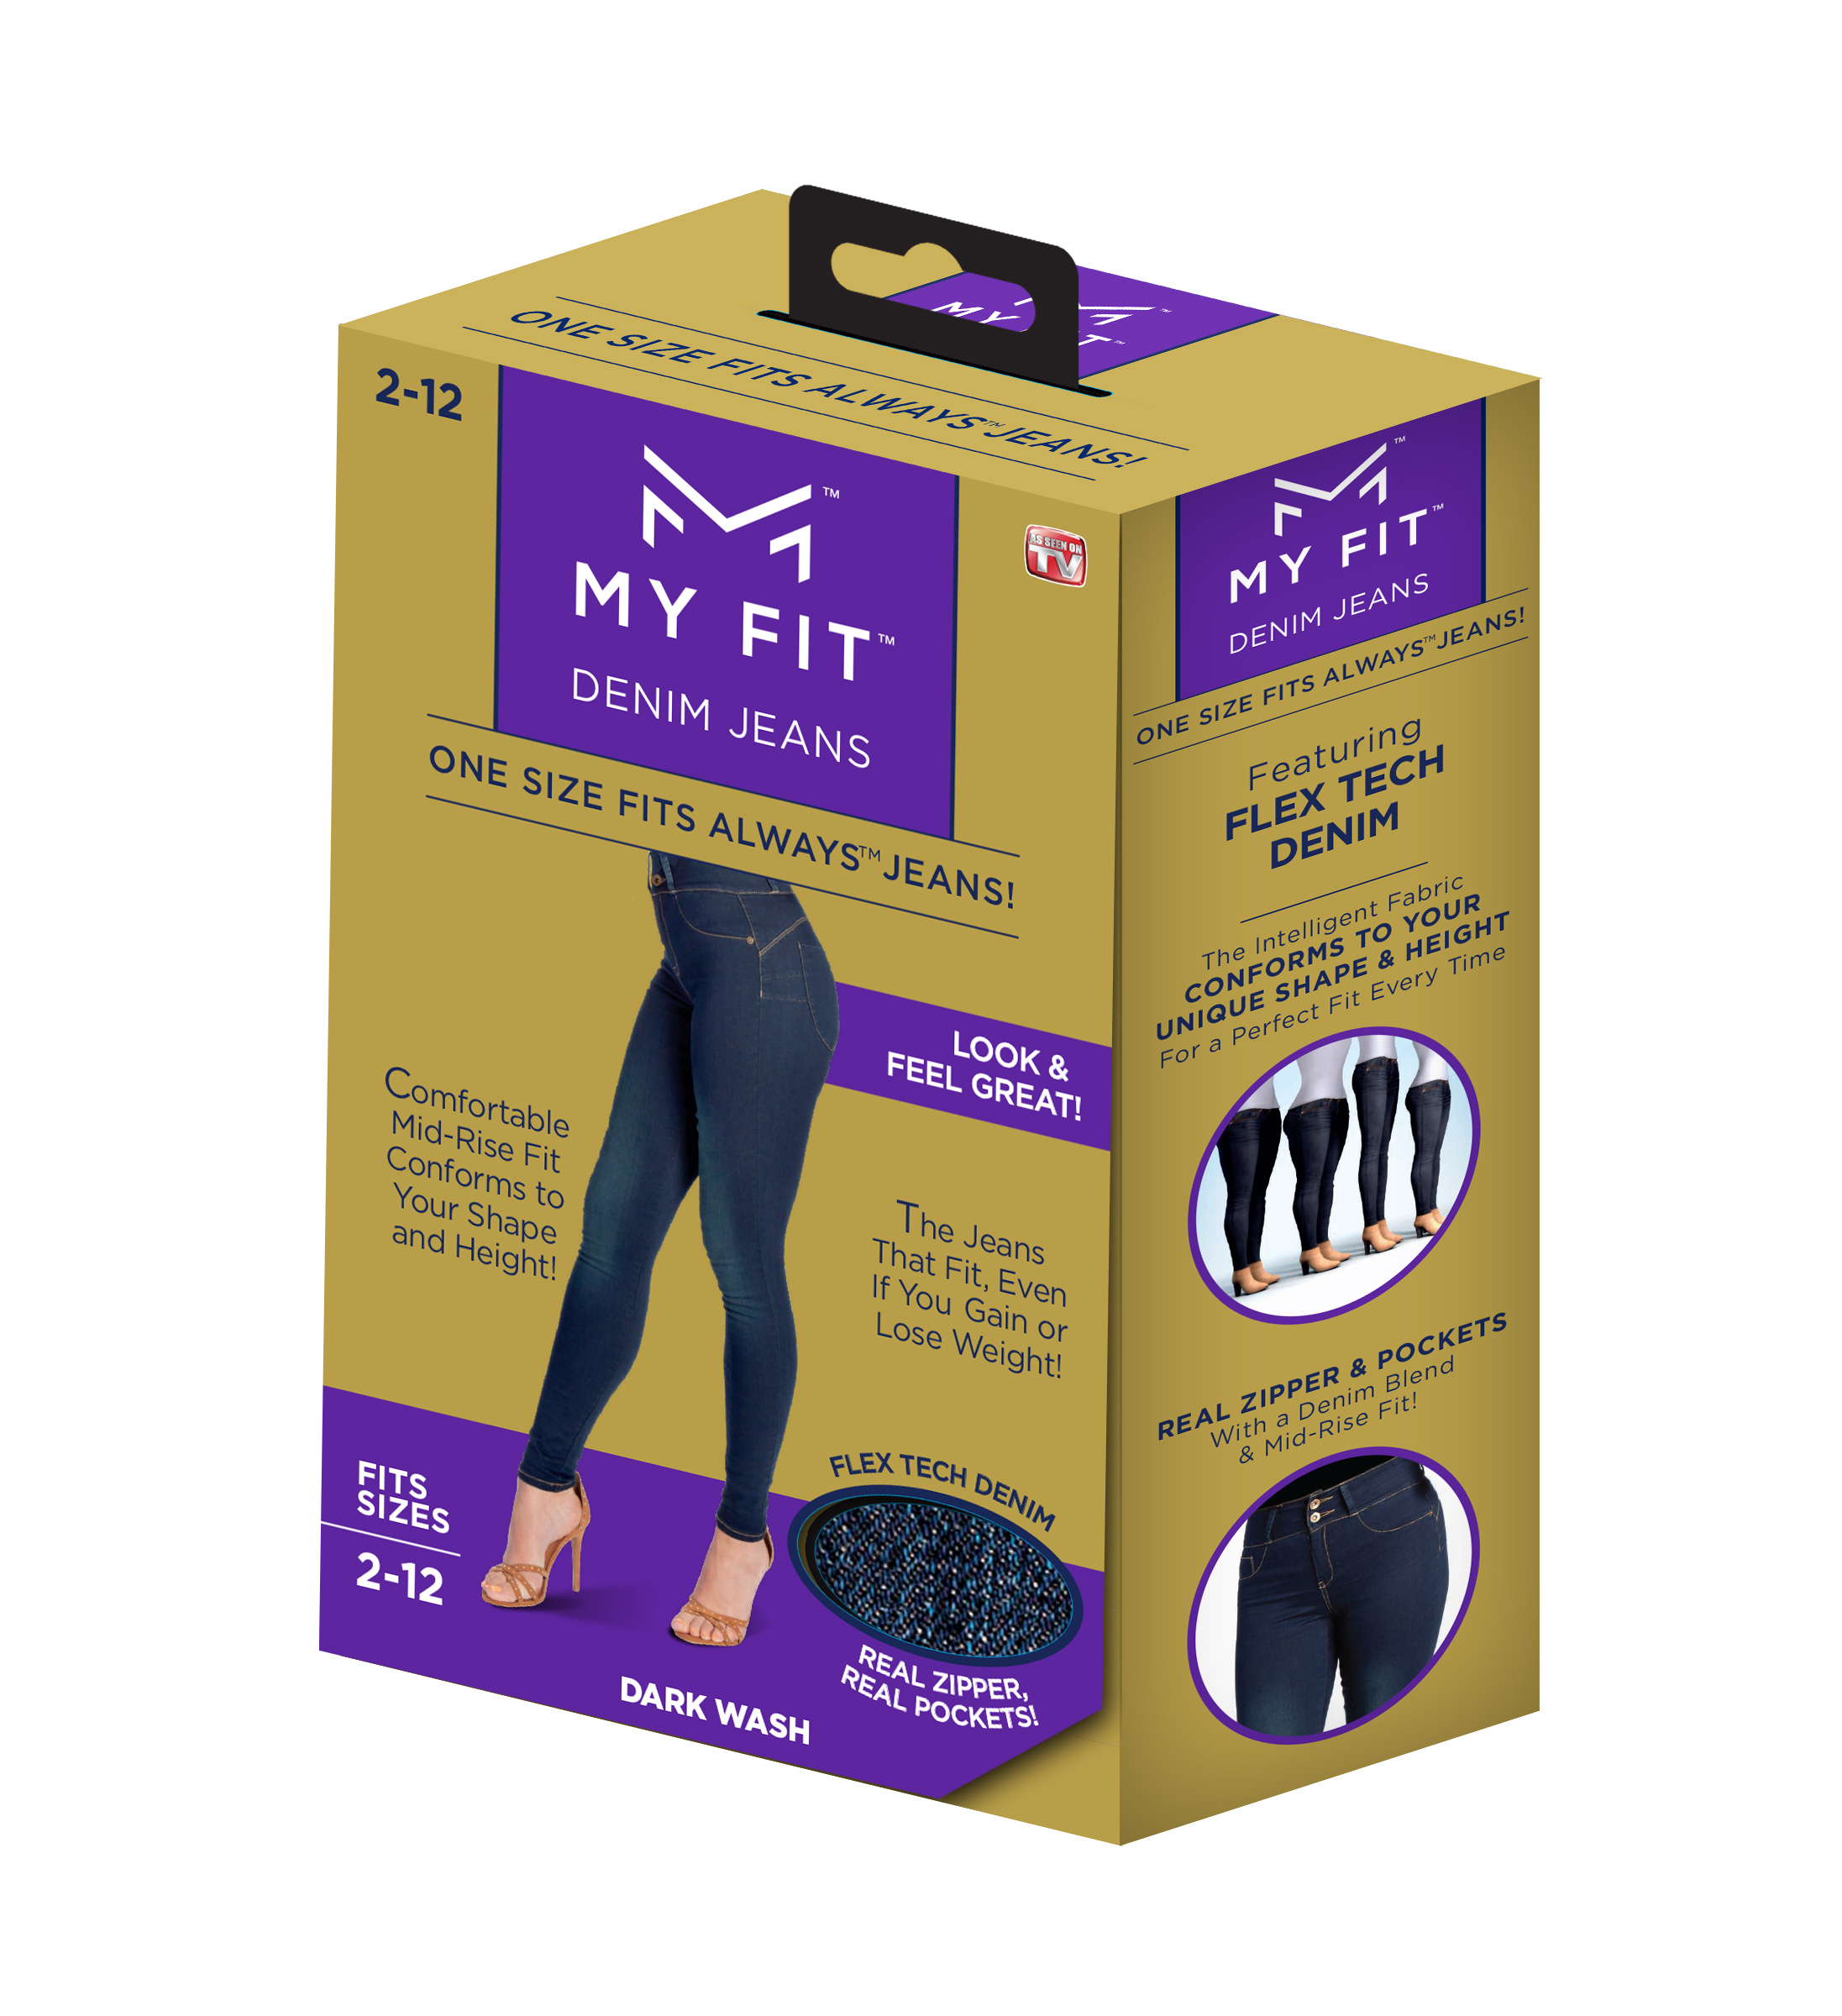 My Fit Jeans On-Trend Denim, Yoga Pant Comfort, Size 2-12 As Seen on TV